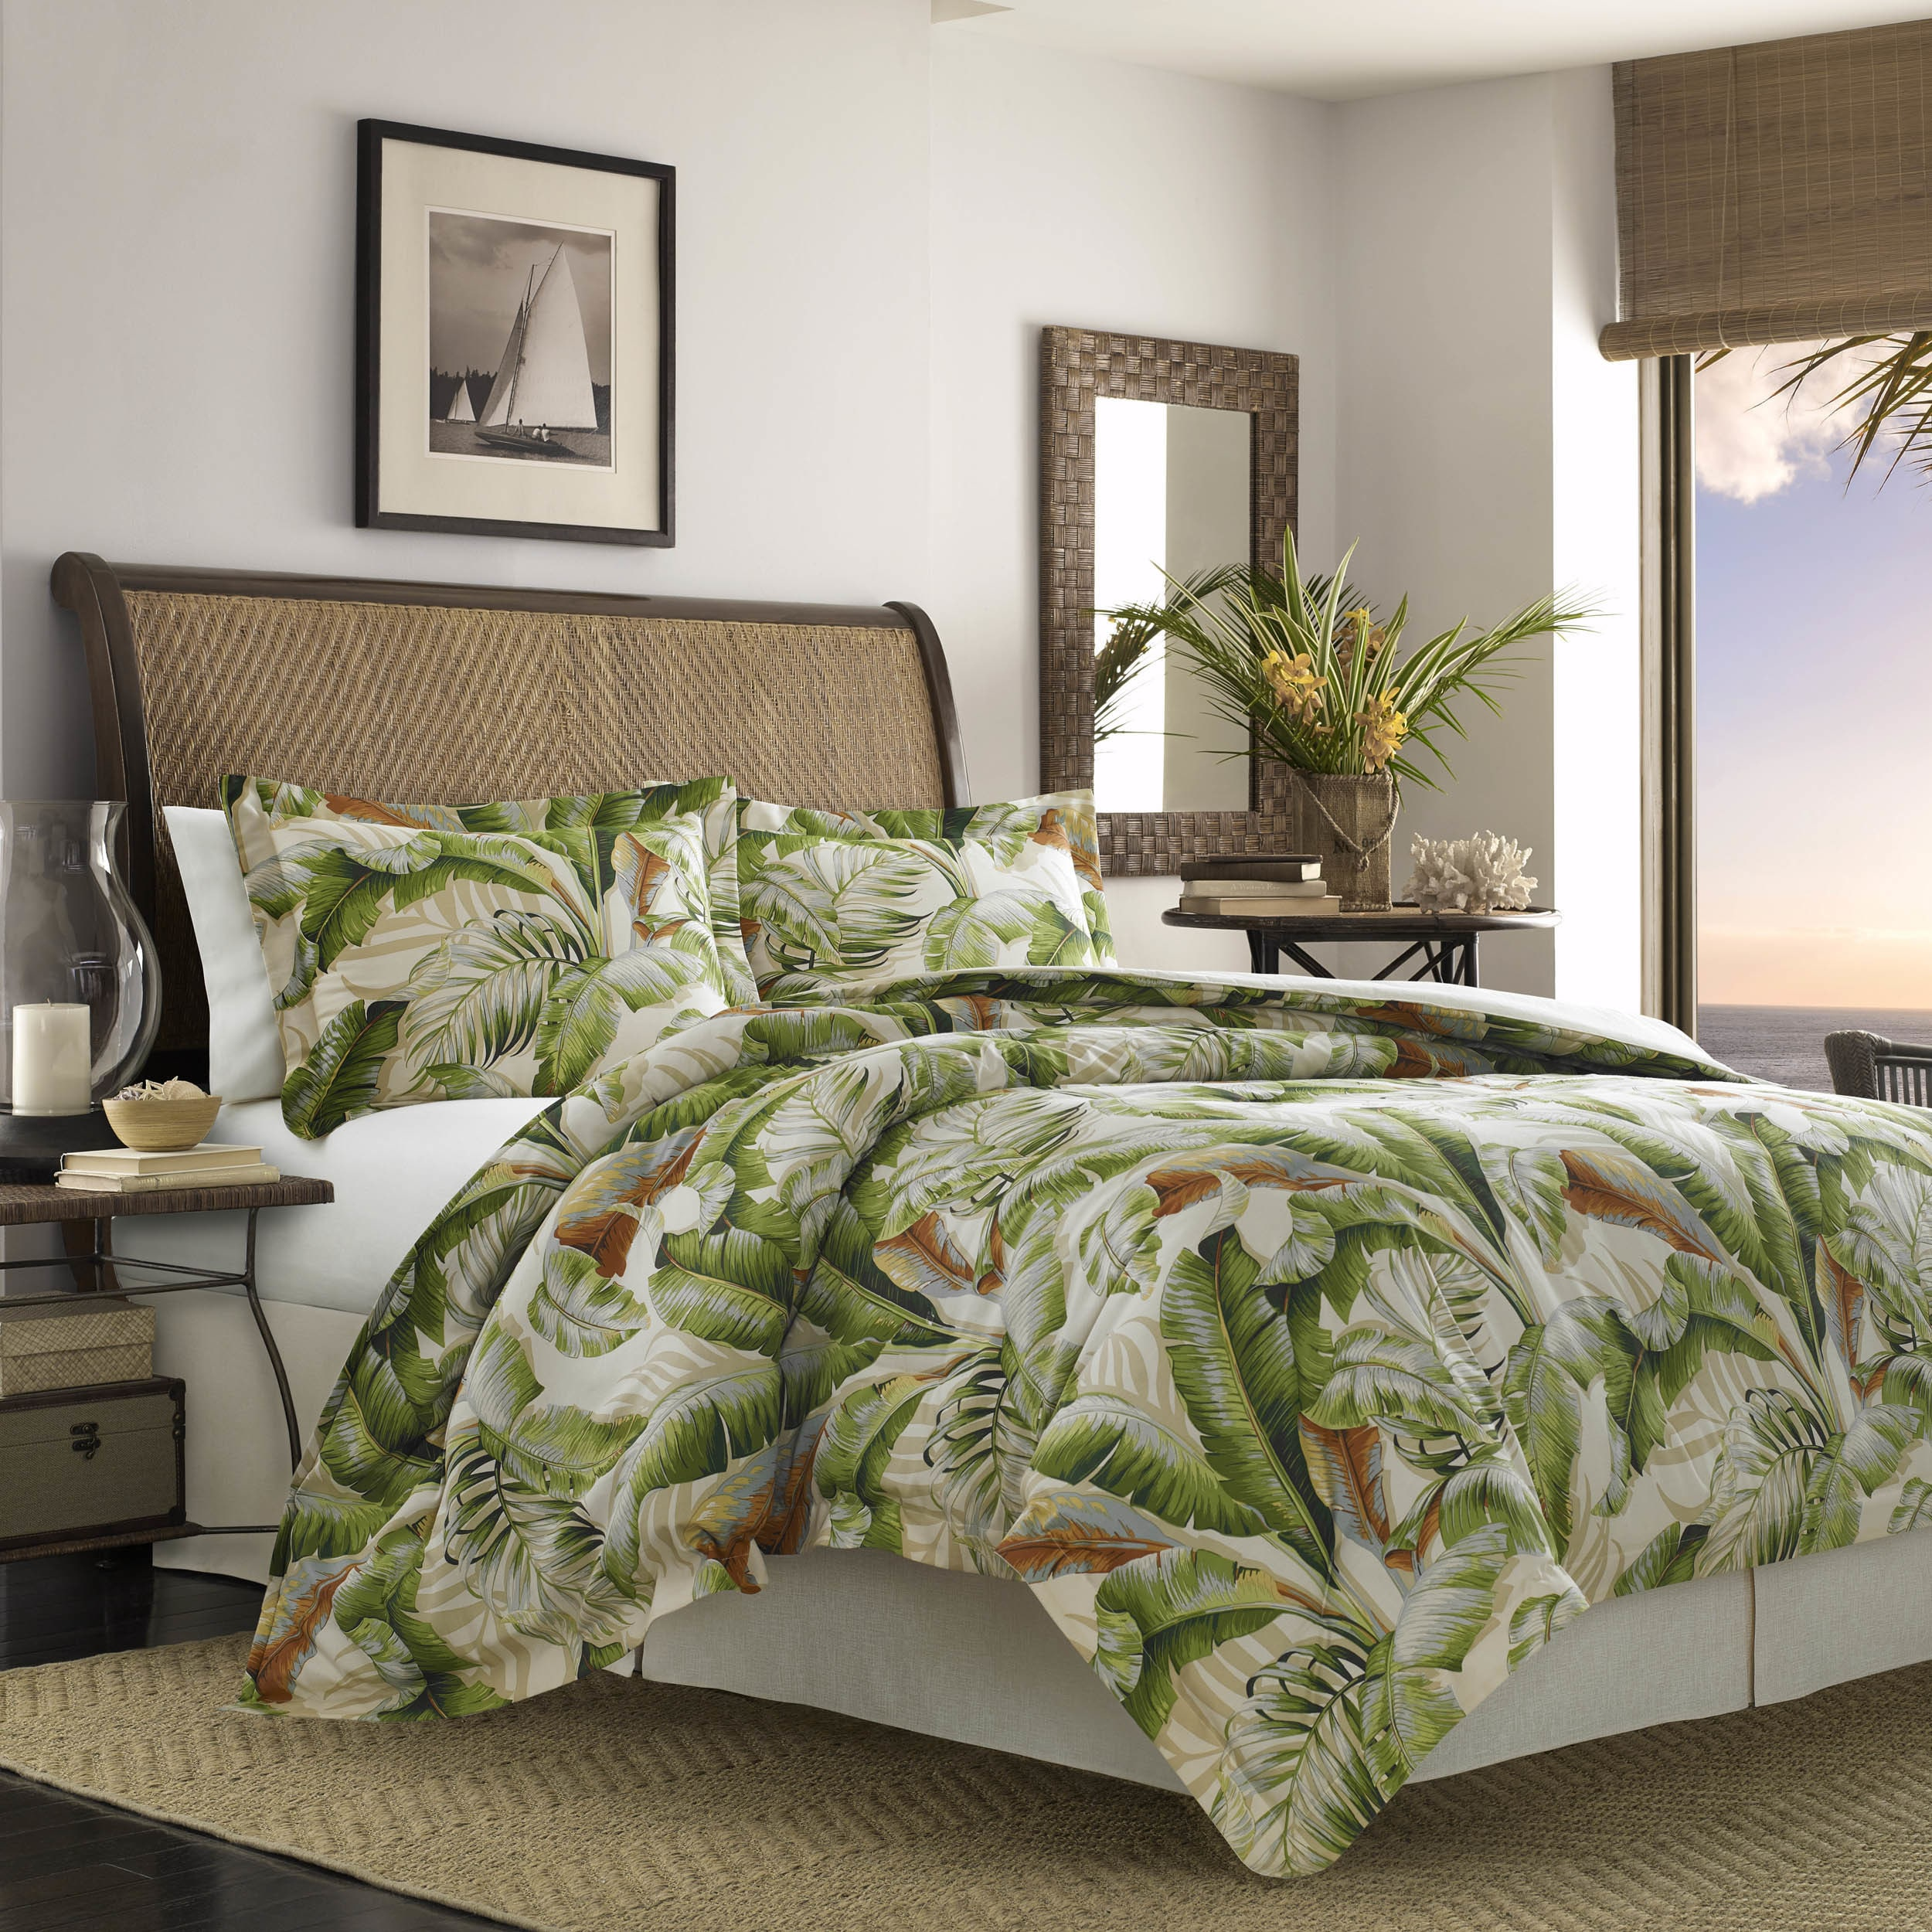 c0568fa392b58 Shop Tommy Bahama Palmiers 4-piece Comforter Set - On Sale - Free Shipping  Today - Overstock - 18843885